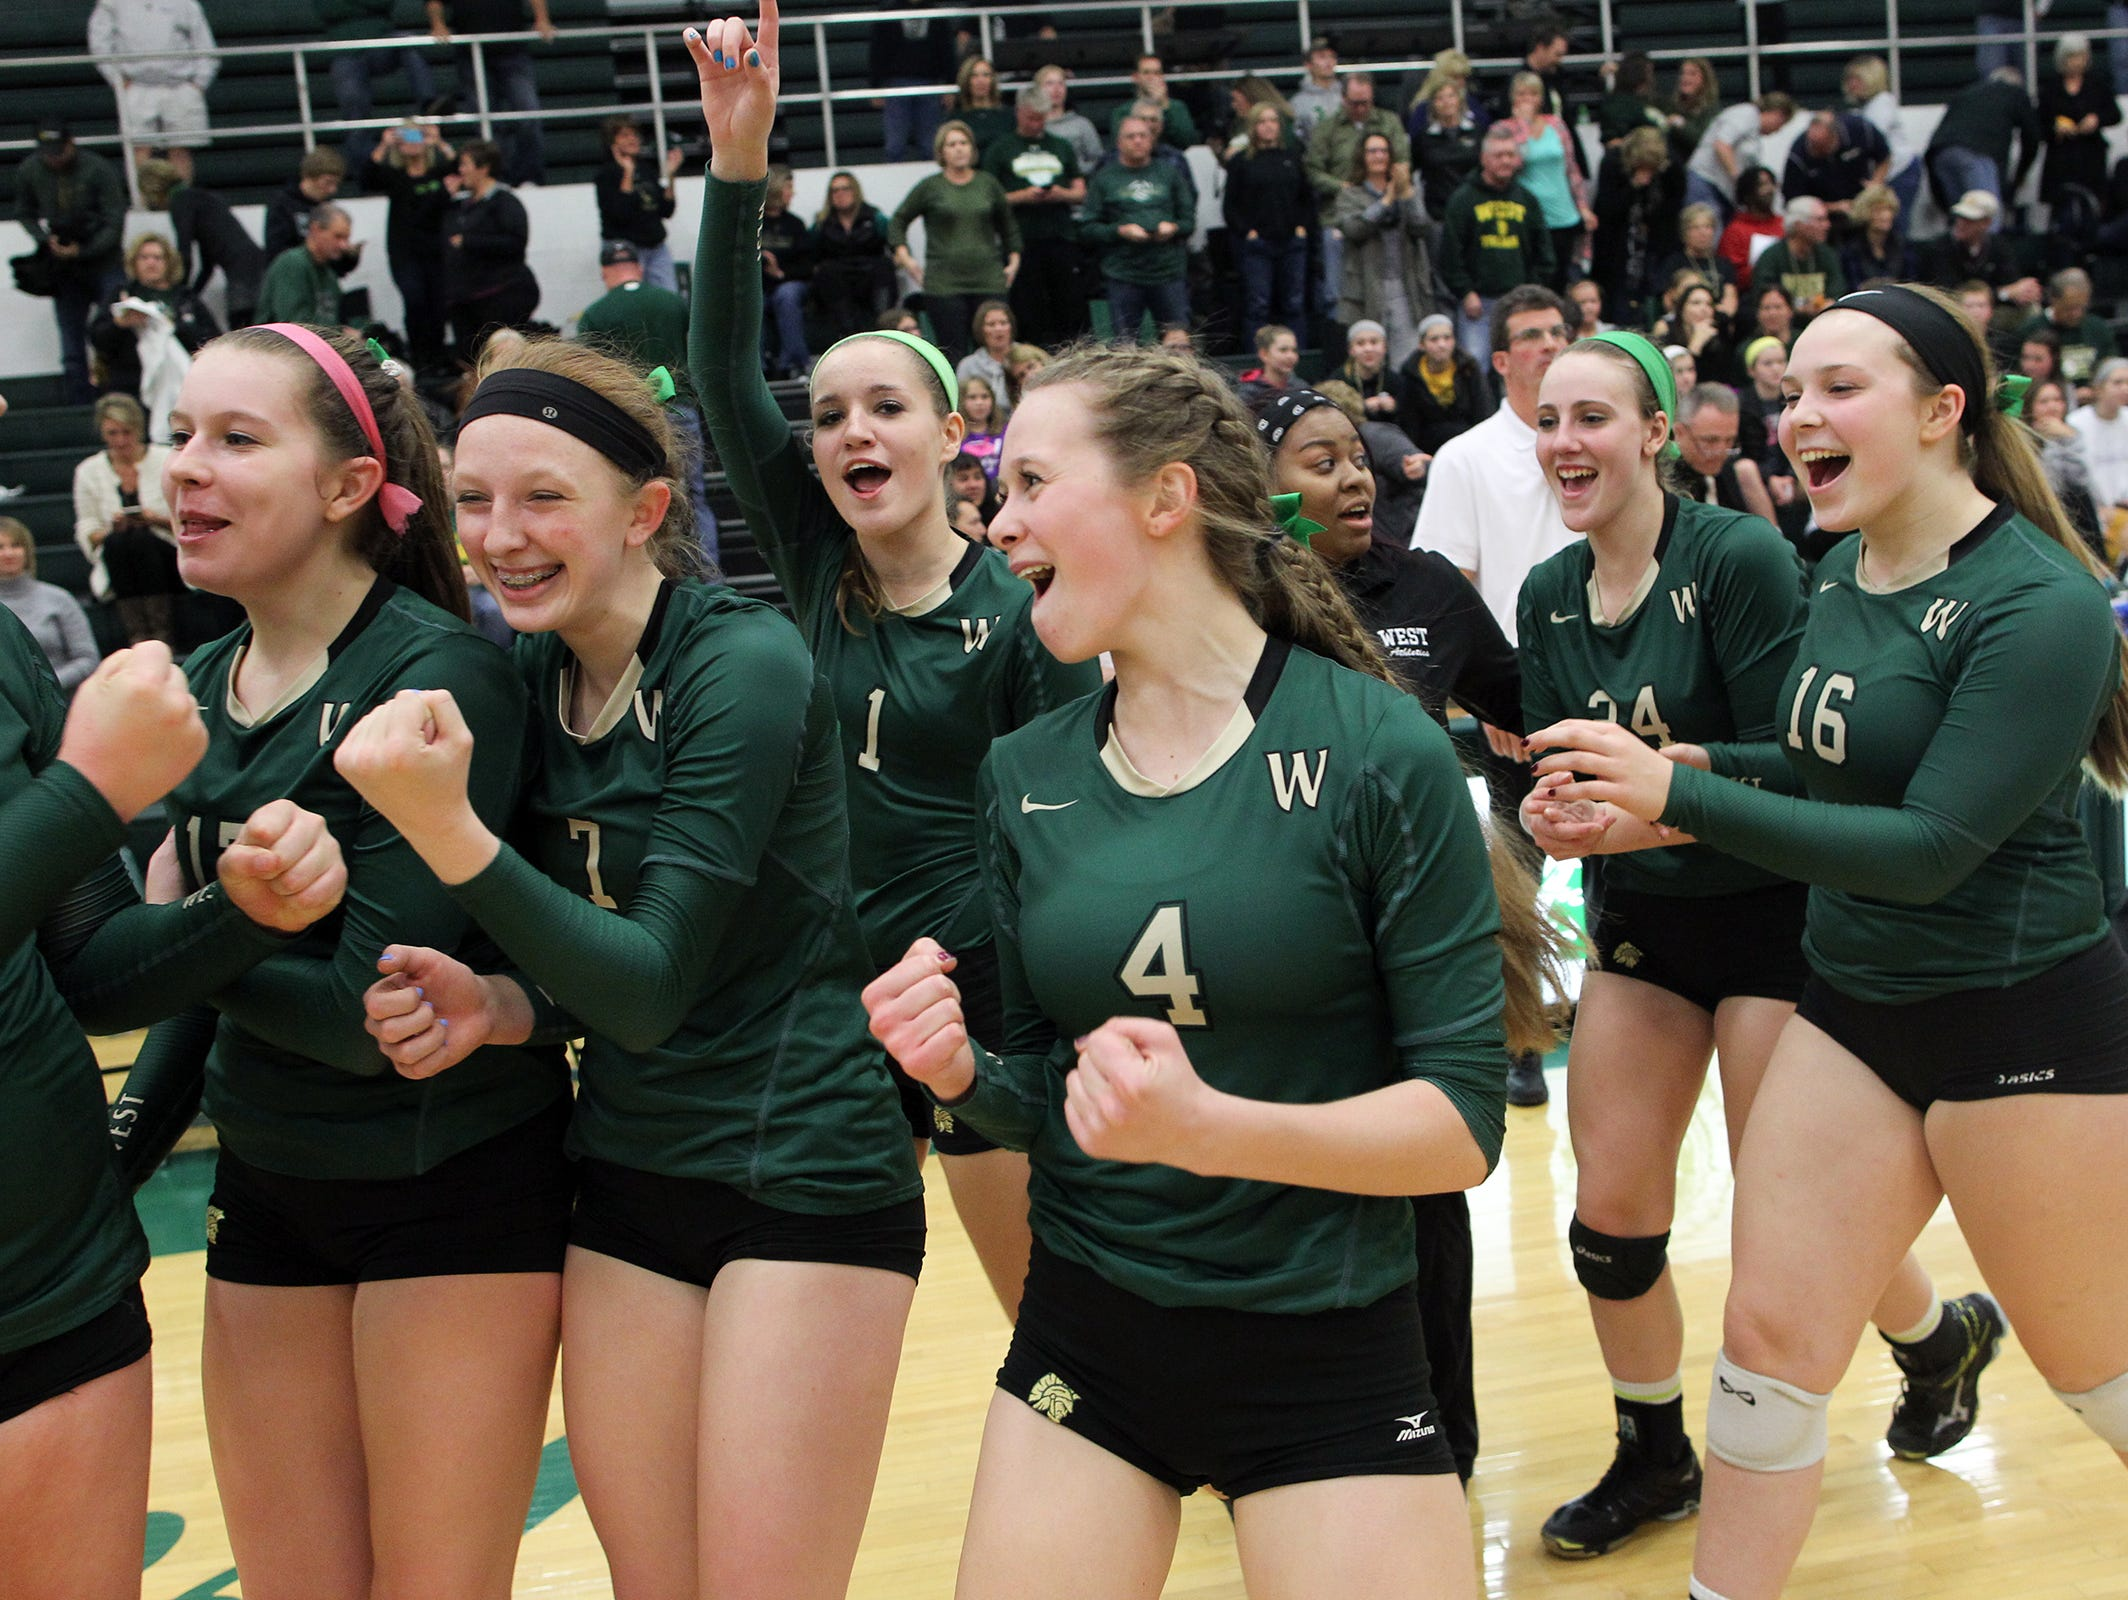 West High teammates celebrate their regional semifinal win over City High at West High on Thursday, Oct. 29, 2015.